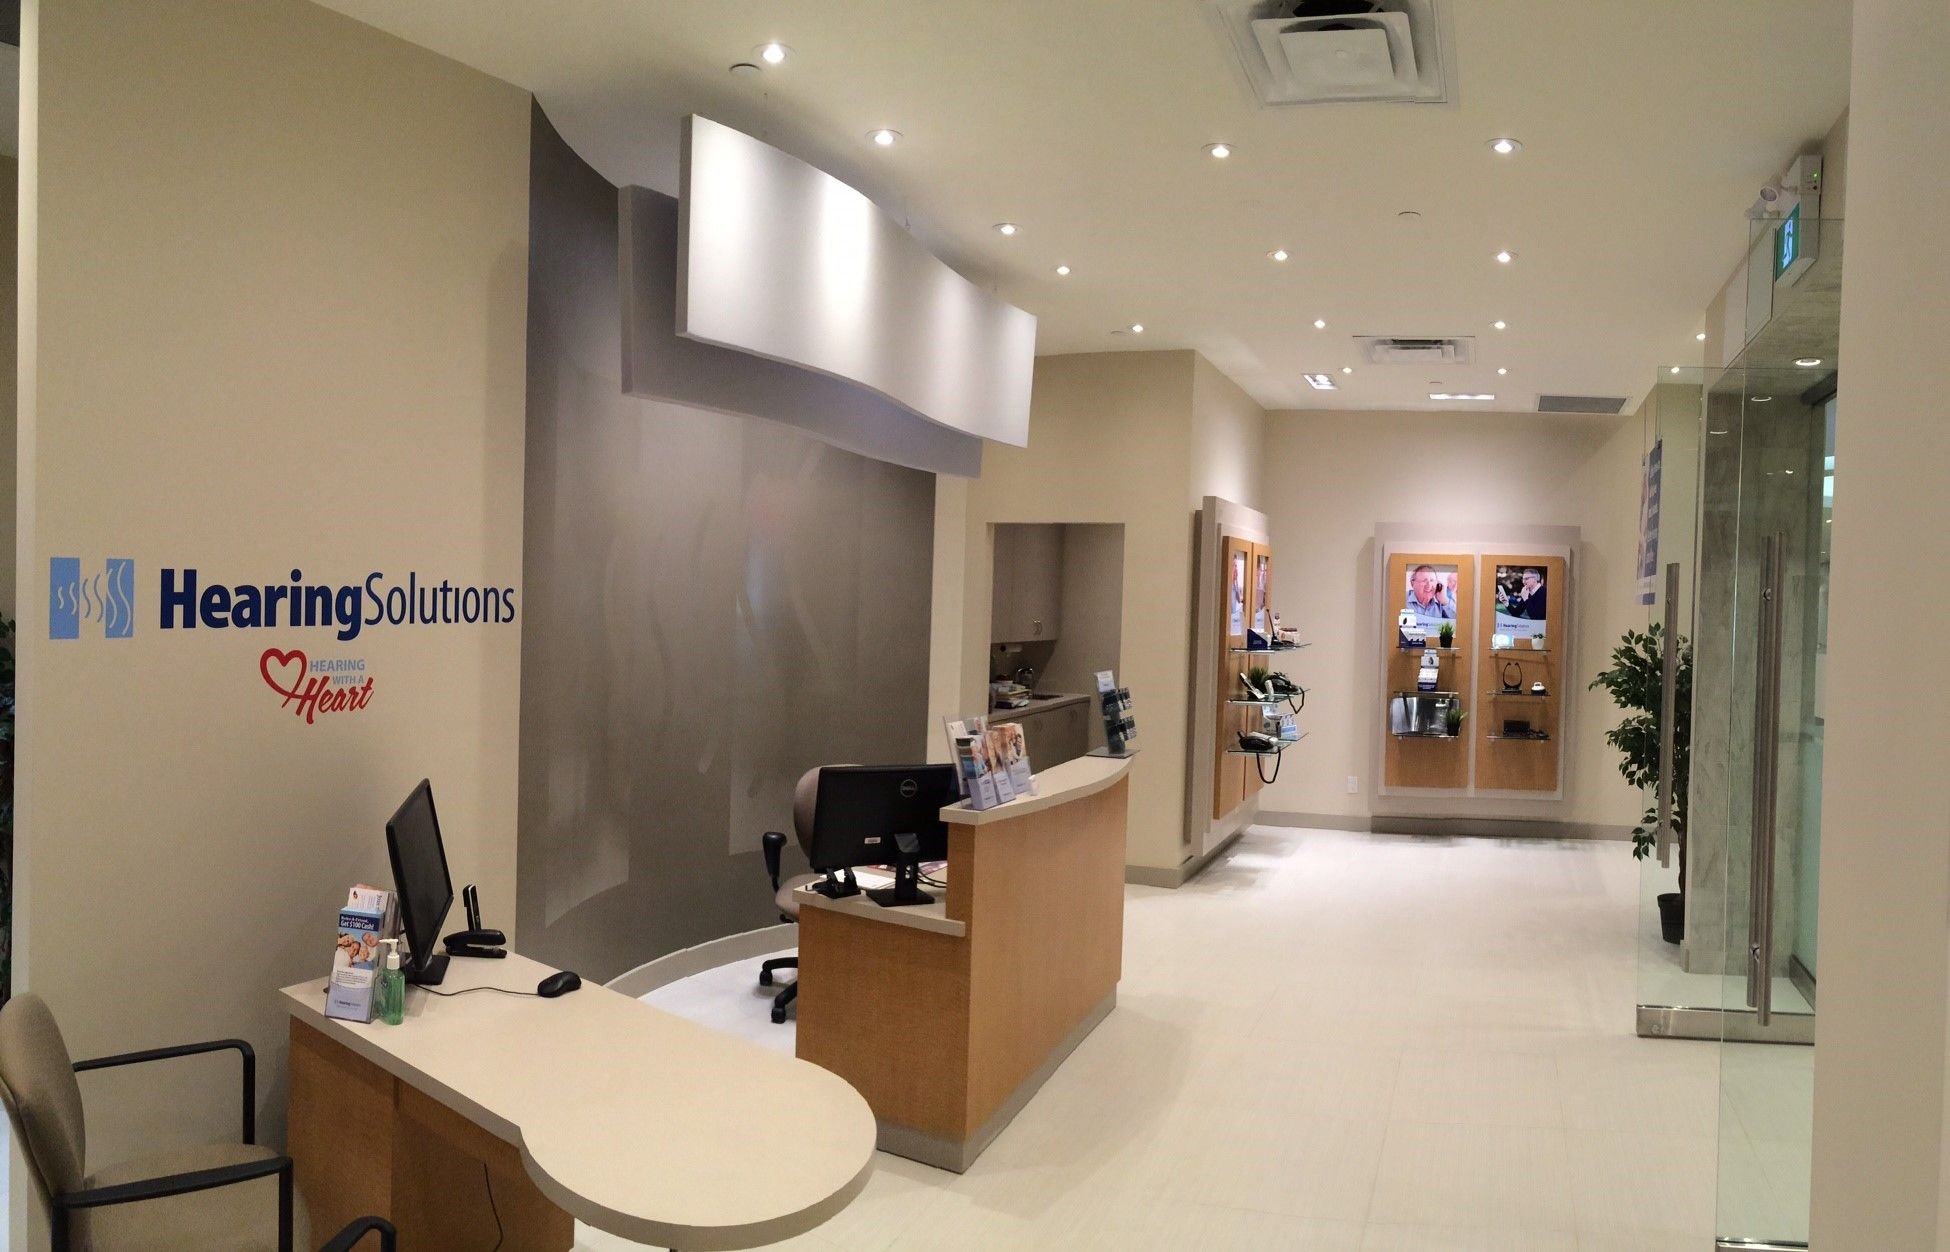 We Re Ready To Meet And Greet You At Our Newest Hearing Health Clinic Inside Square One Shopping Centre In Mississau Hearing Health Hearing Solution Home Decor